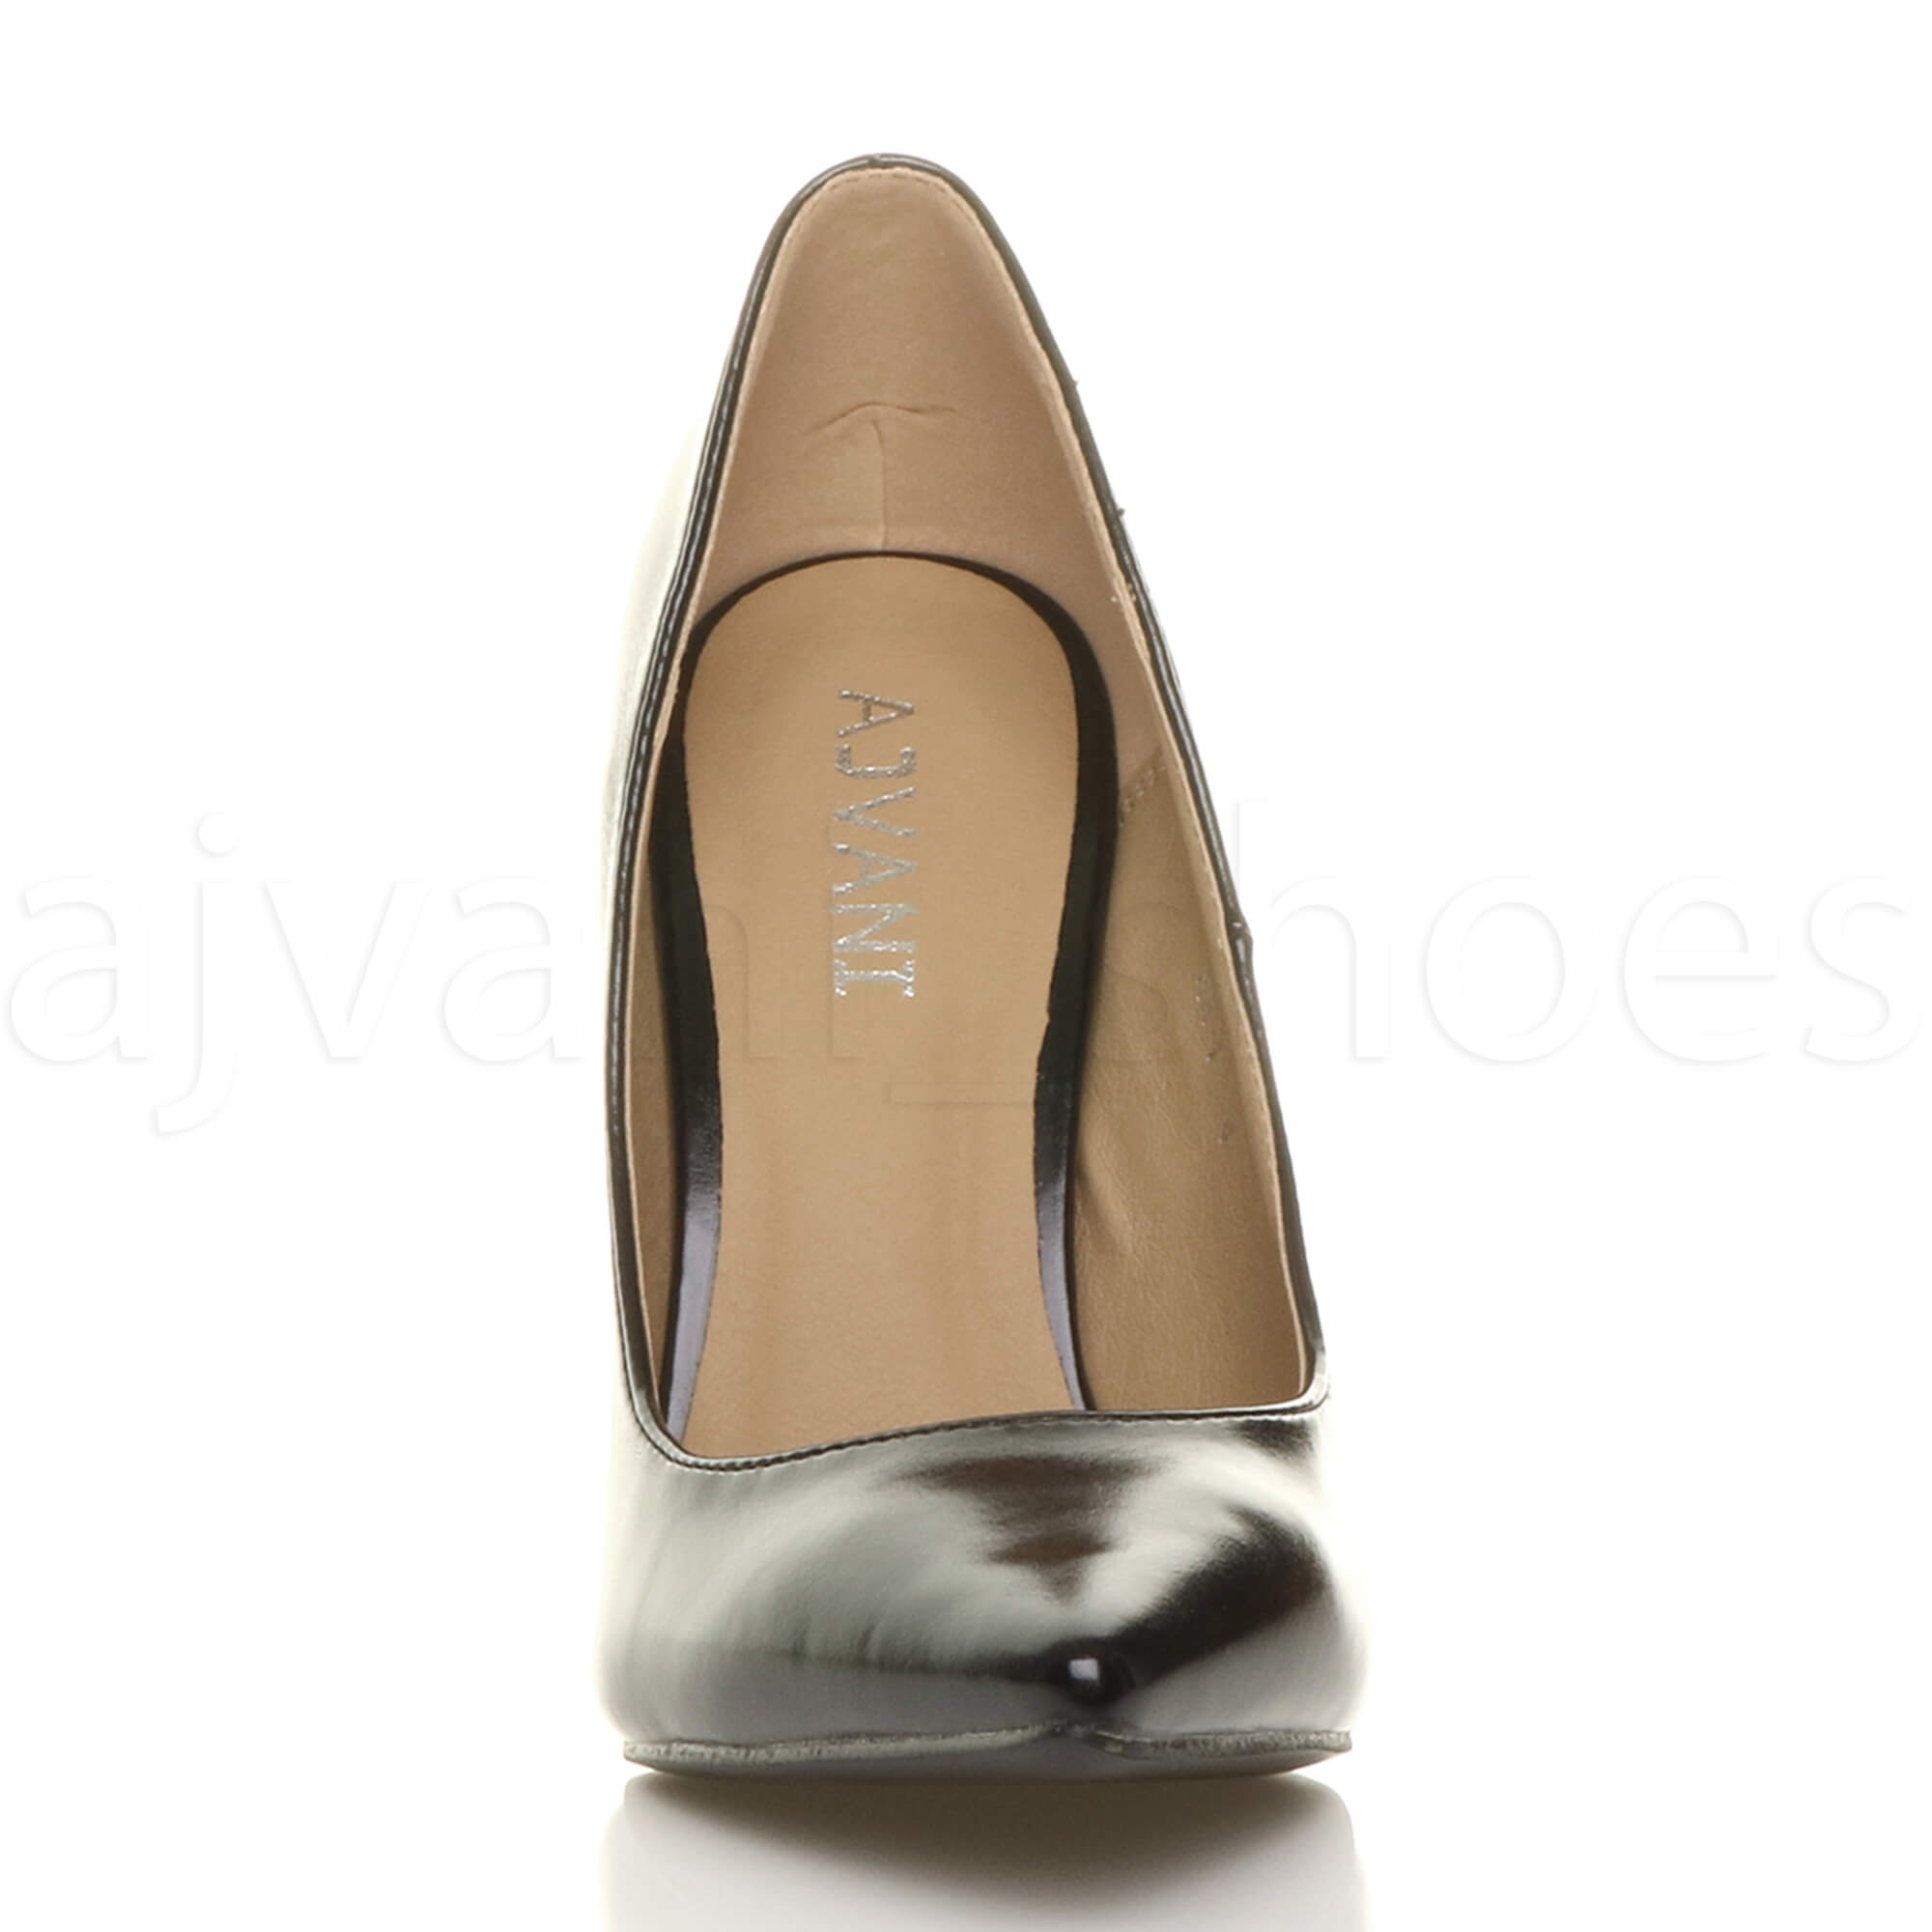 WOMENS-LADIES-HIGH-HEEL-POINTED-CONTRAST-COURT-SMART-PARTY-WORK-SHOES-PUMPS-SIZE thumbnail 15